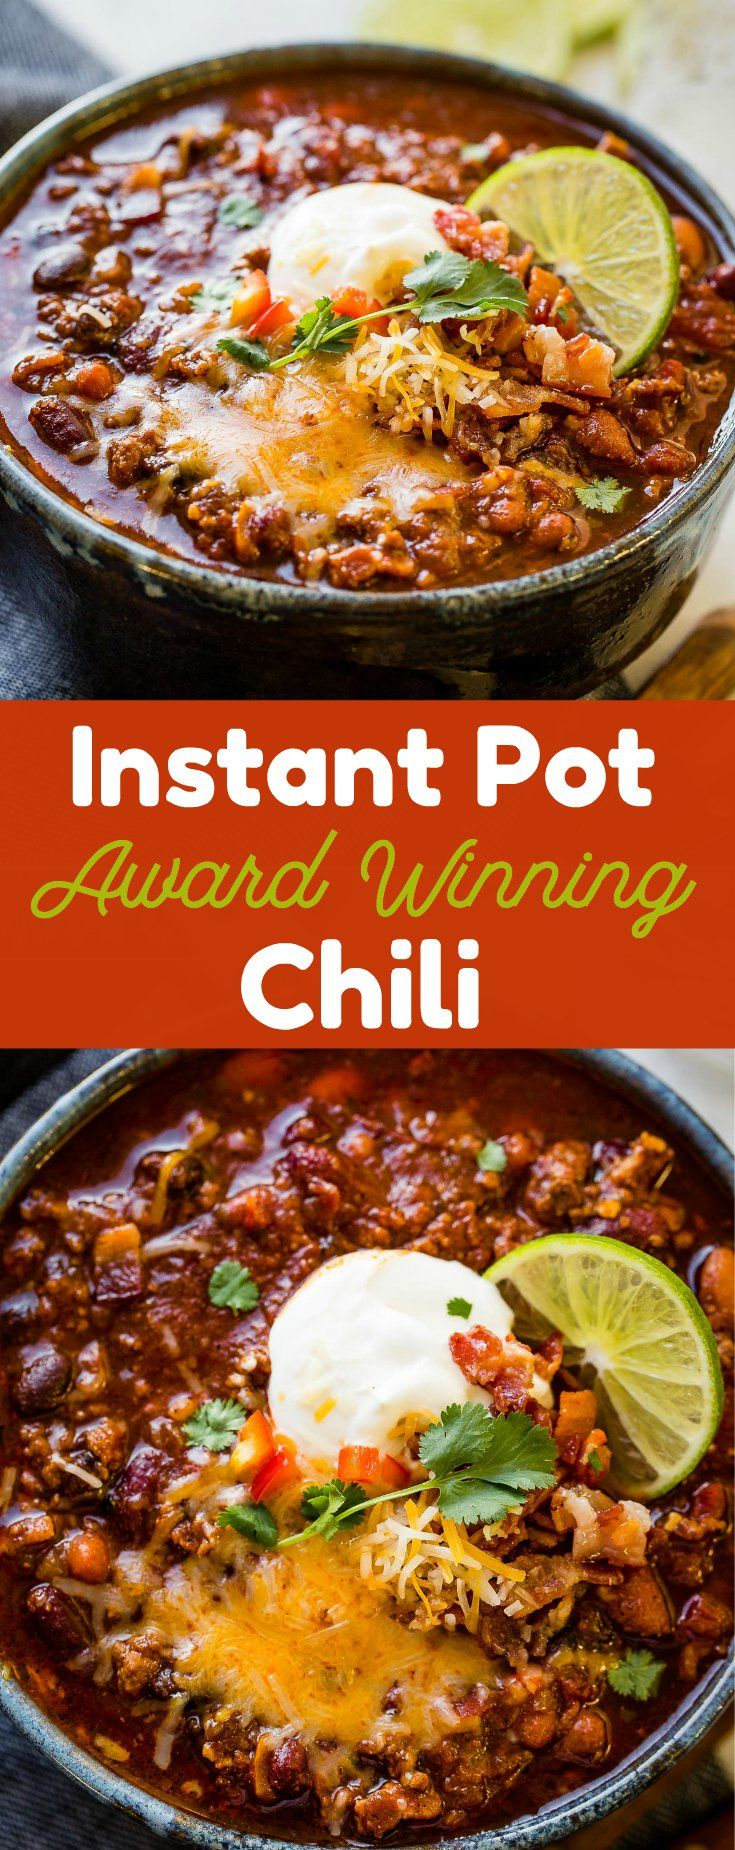 Instant Pot Chili that is award winning and bringing home chili cook-off victories across the count